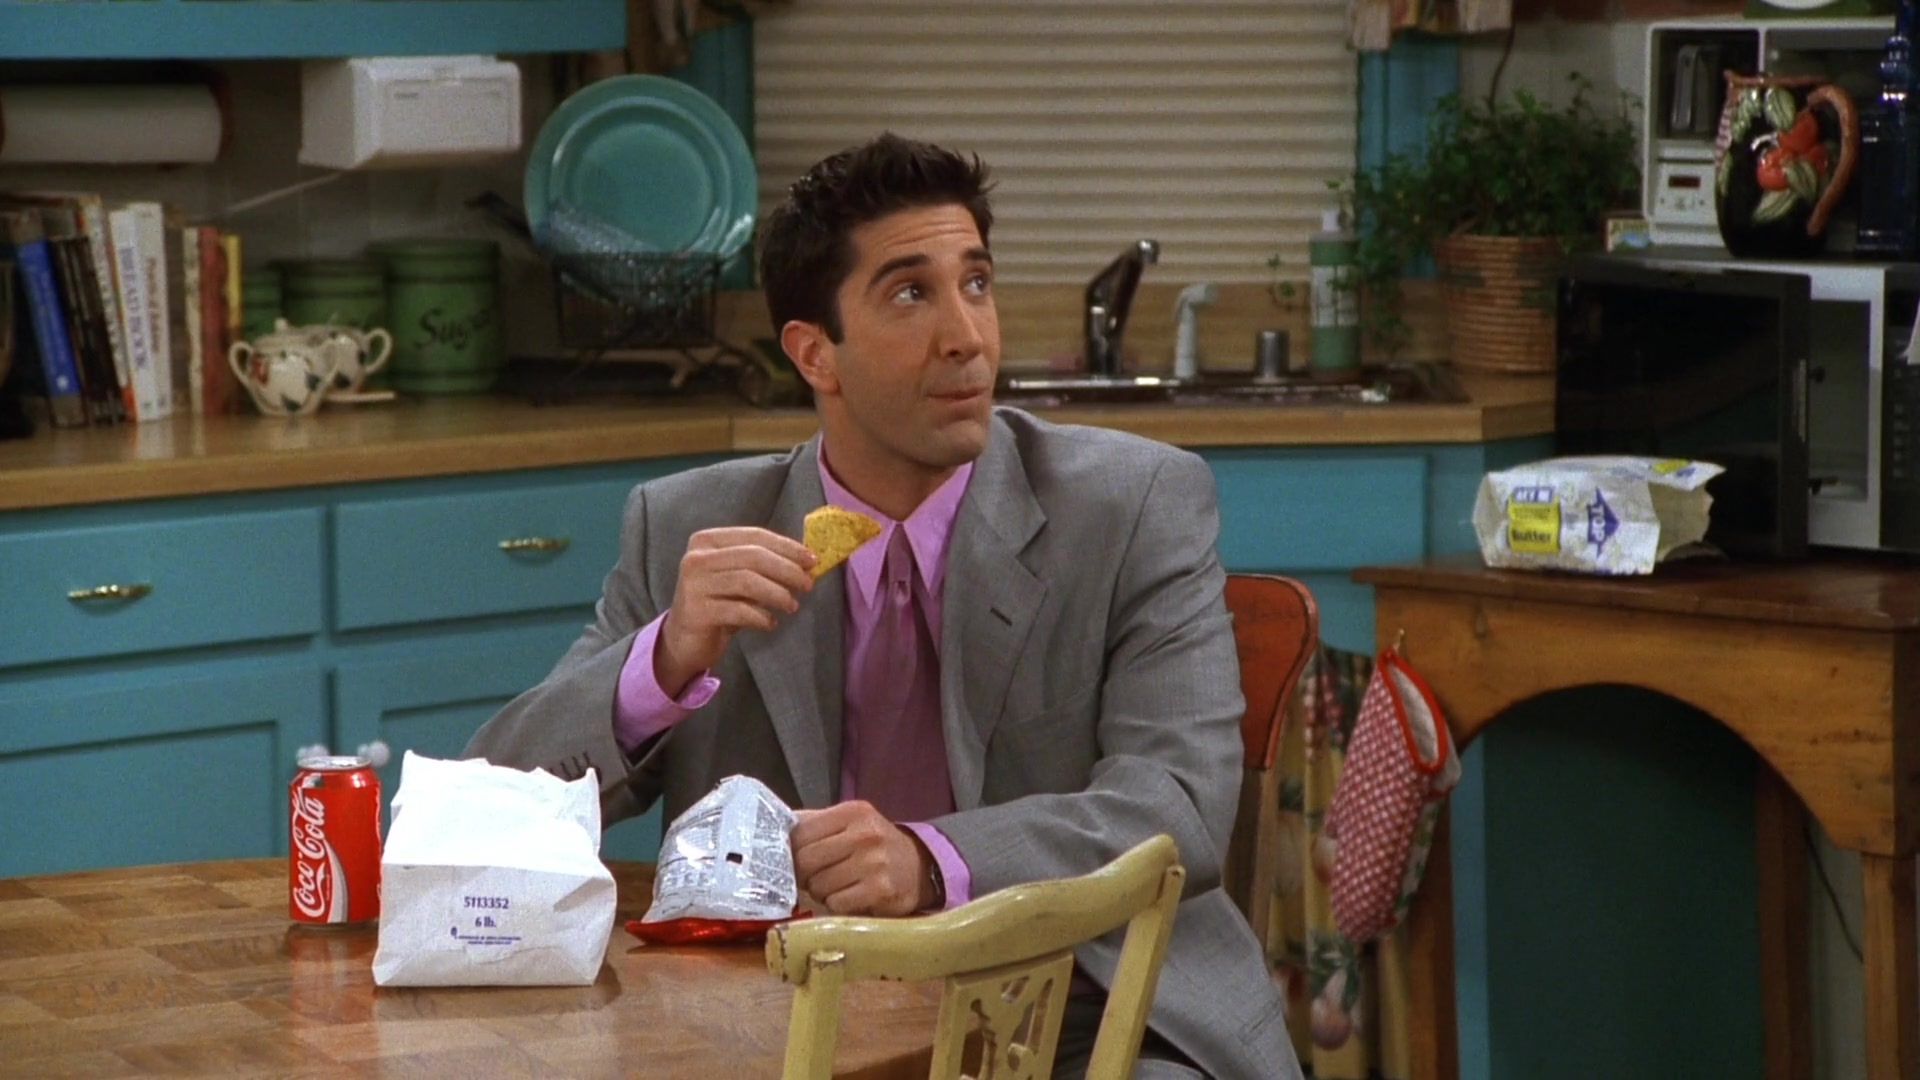 """Coca-Cola Classic Can in Friends Season 3 Episode 22 """"The One With the Screamer"""" (1997)"""